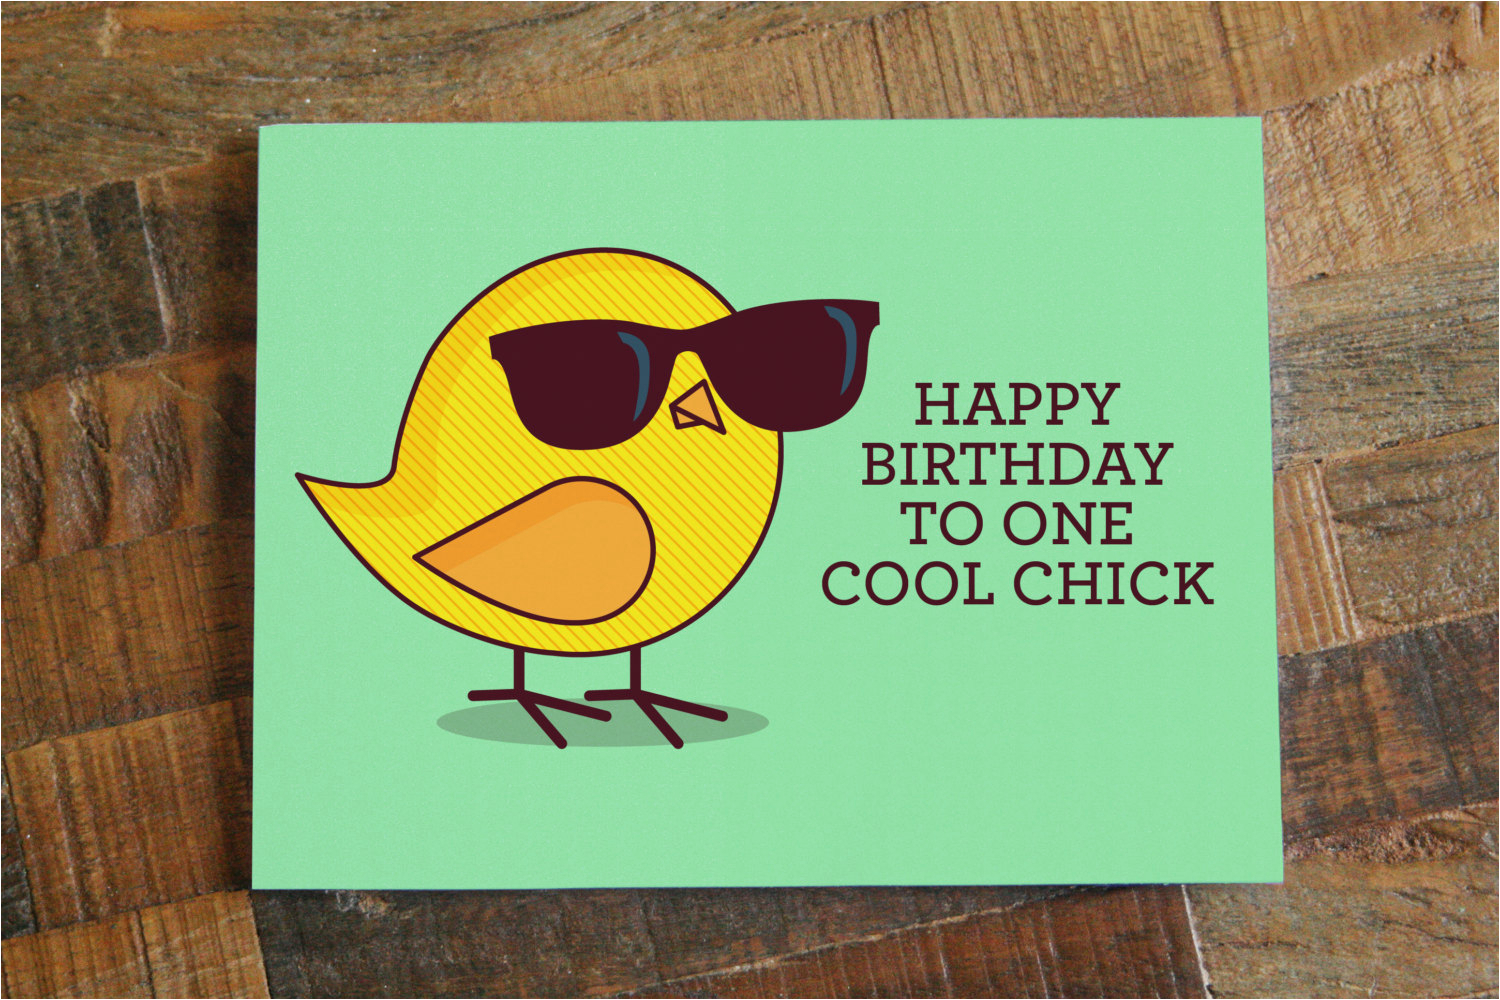 Funny Ideas For Birthday Cards Cool Birthday Cards Online Funny Birthday Card For Her Happy